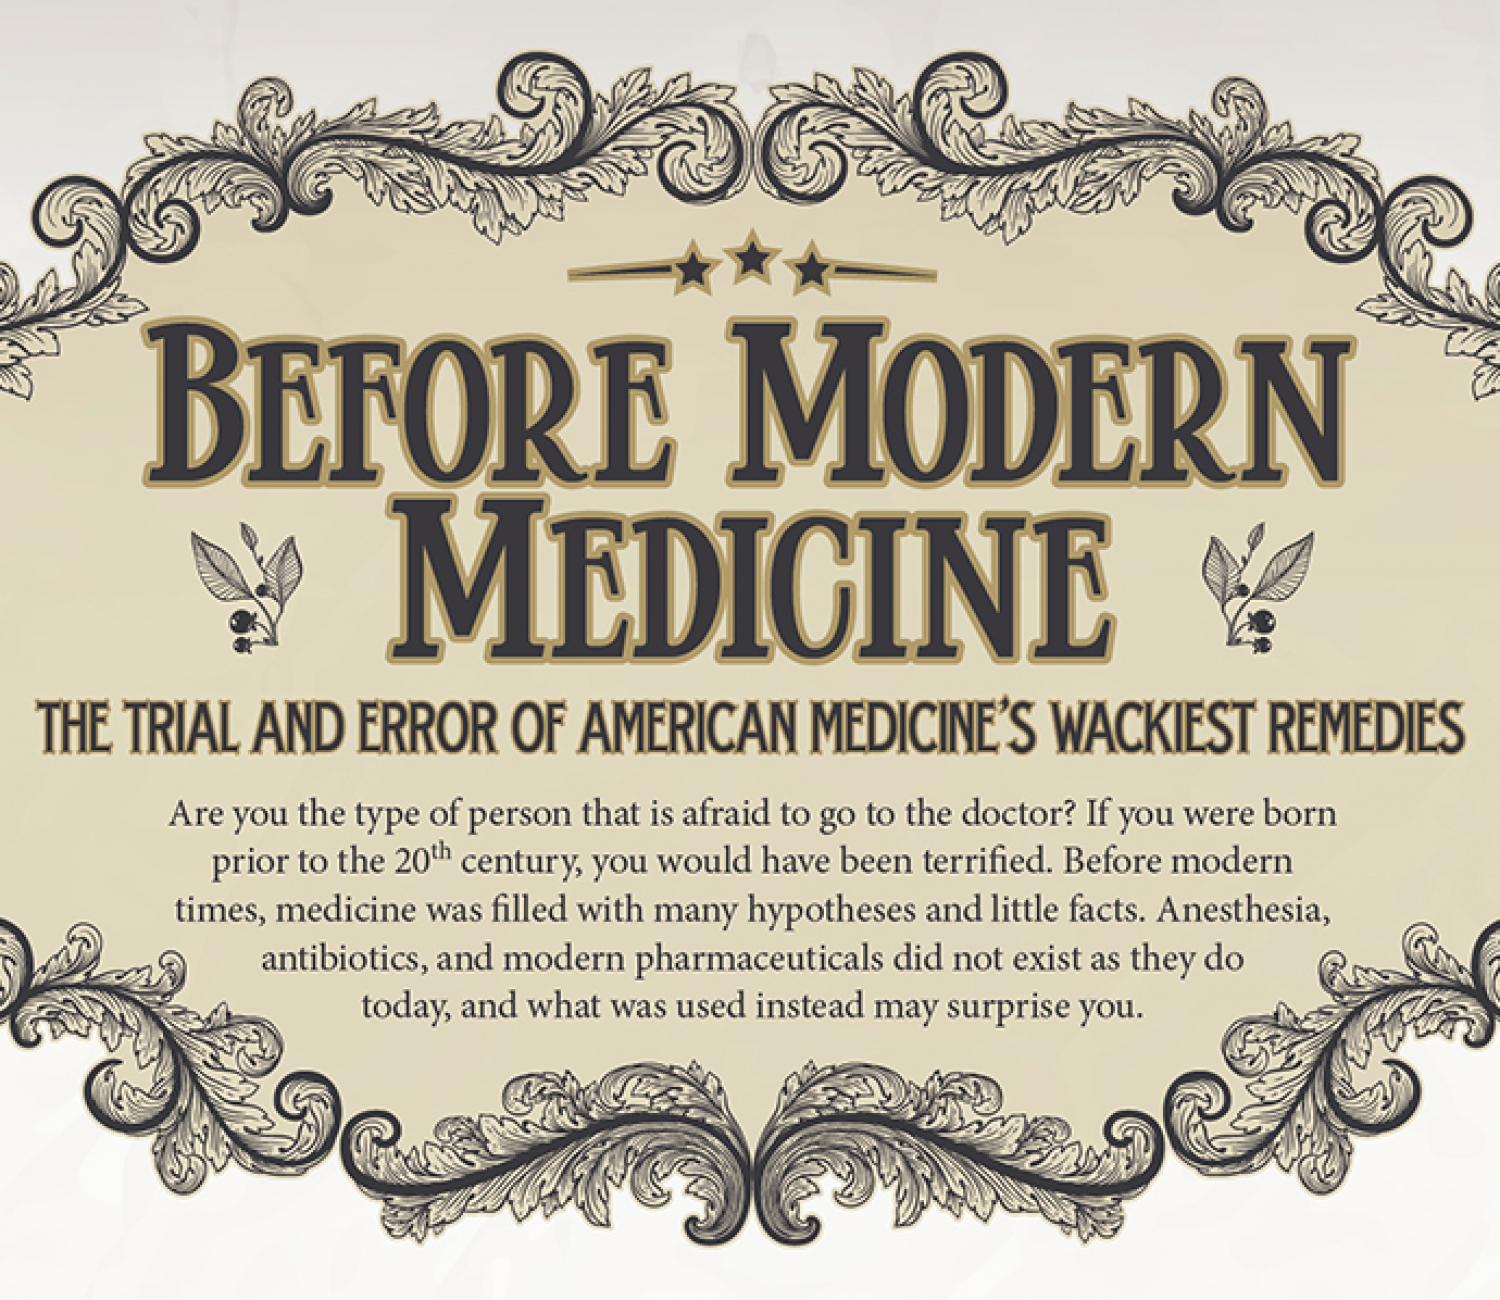 The Trial and Error of American Medicine